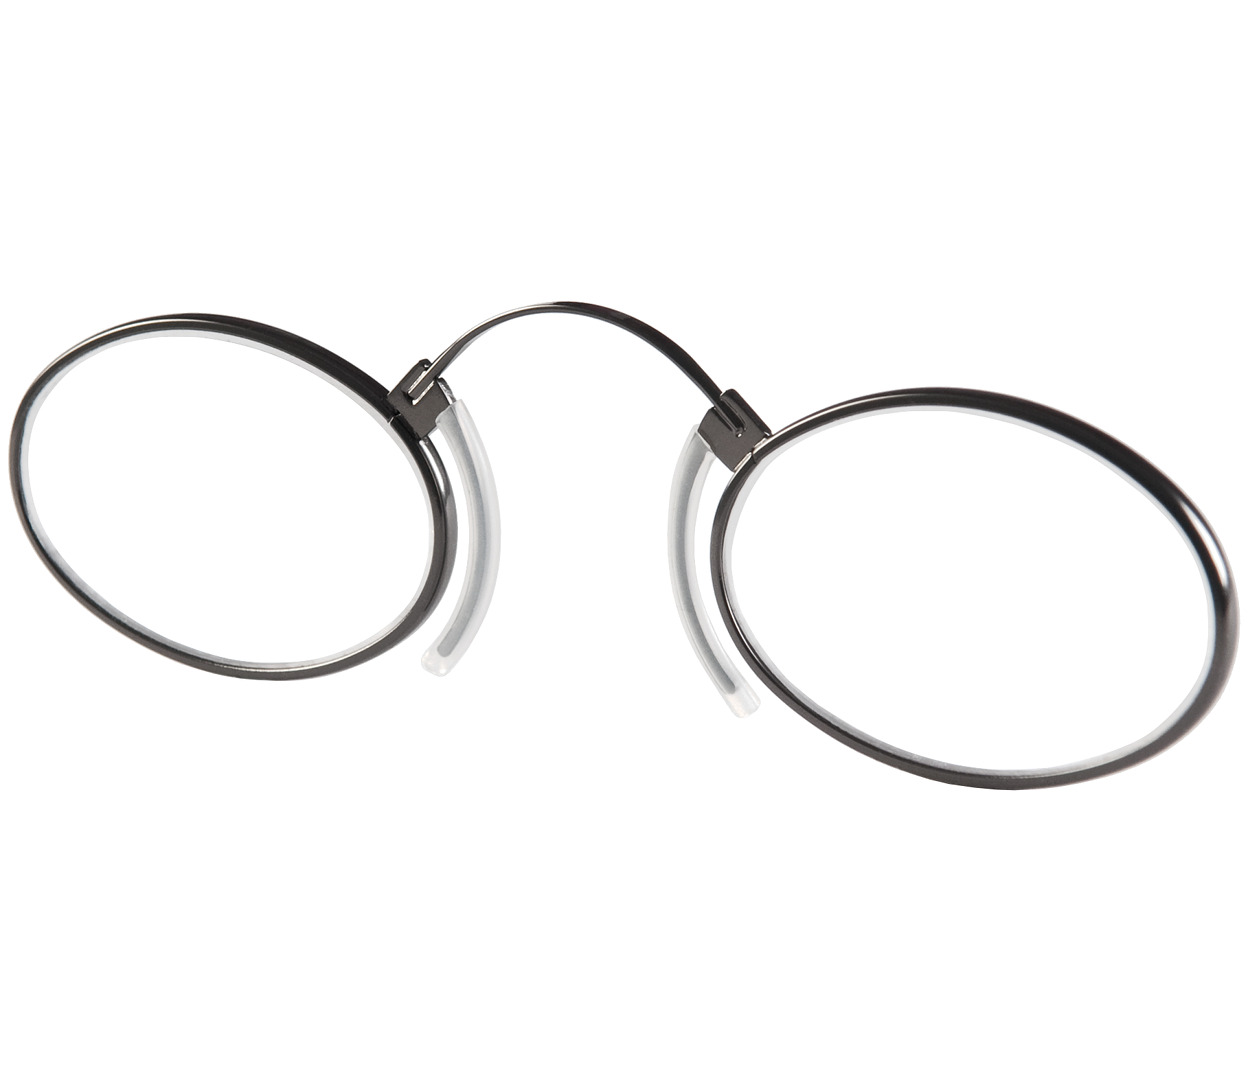 Main Image (Angle) - Clipper (Gunmetal) Pince Nez Reading Glasses